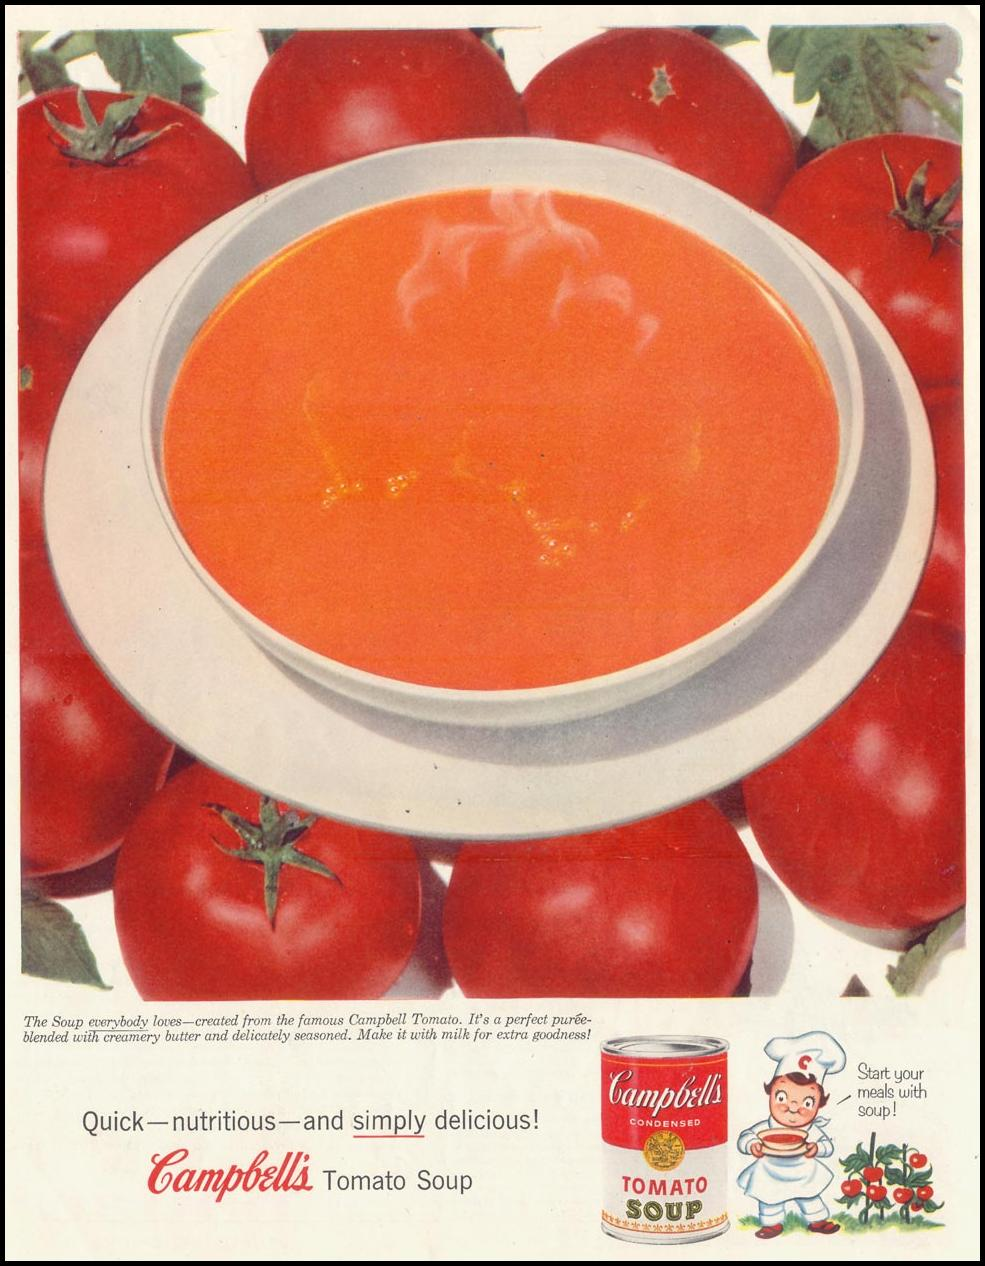 CAMPBELL'S CREAM OF TOMATO SOUP SATURDAY EVENING POST 01/08/1955